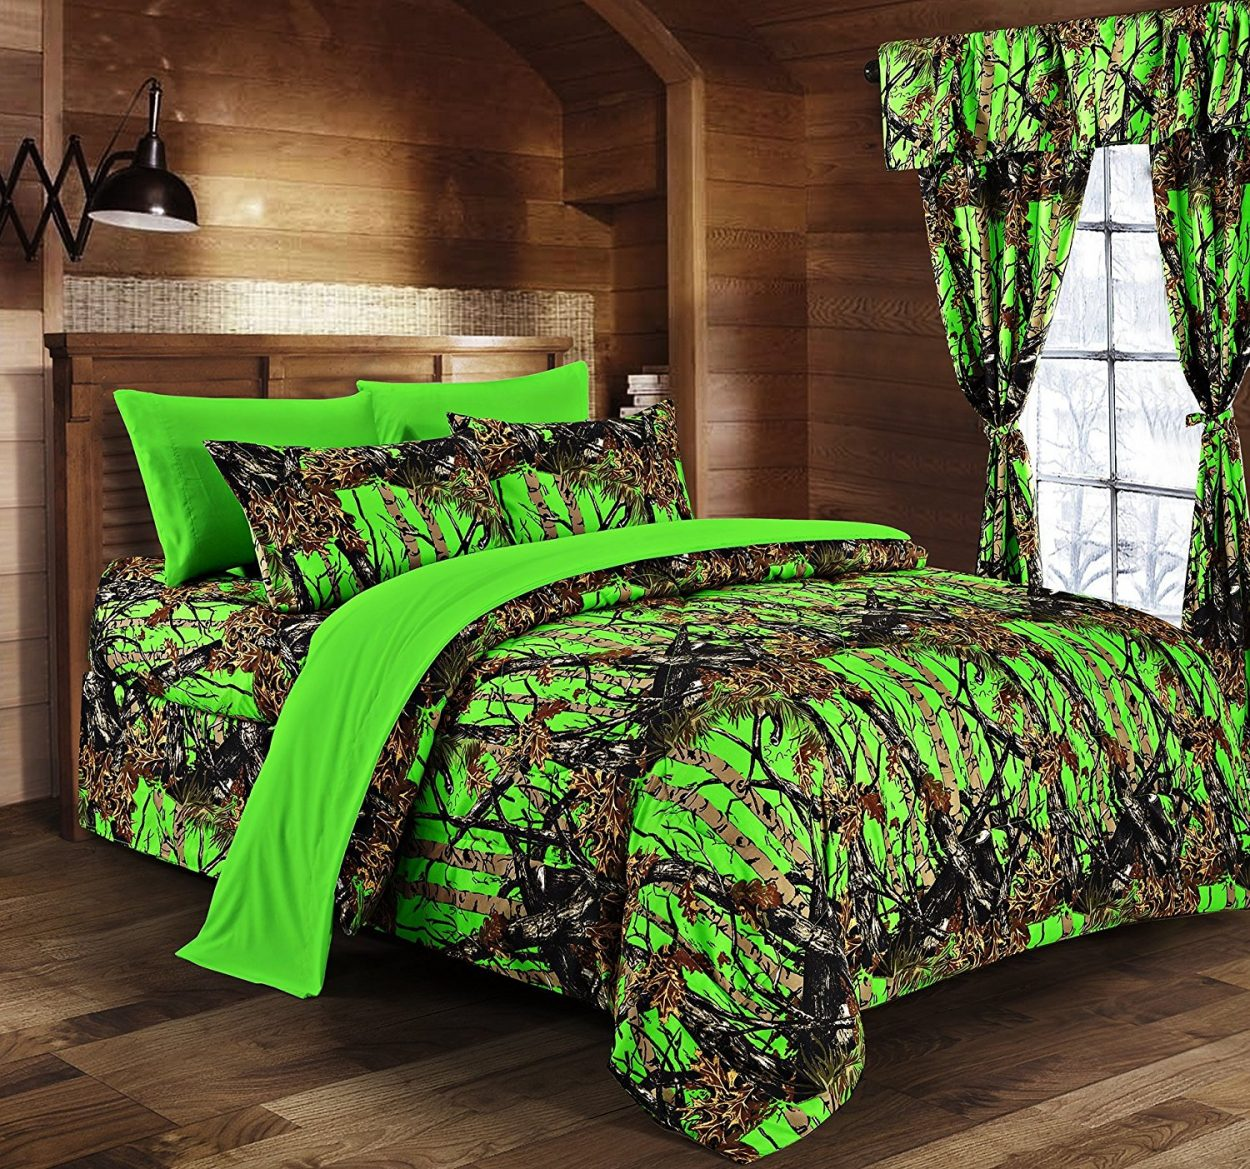 set camo comforter oak barn accents hi bed boot res bedding hiend multi